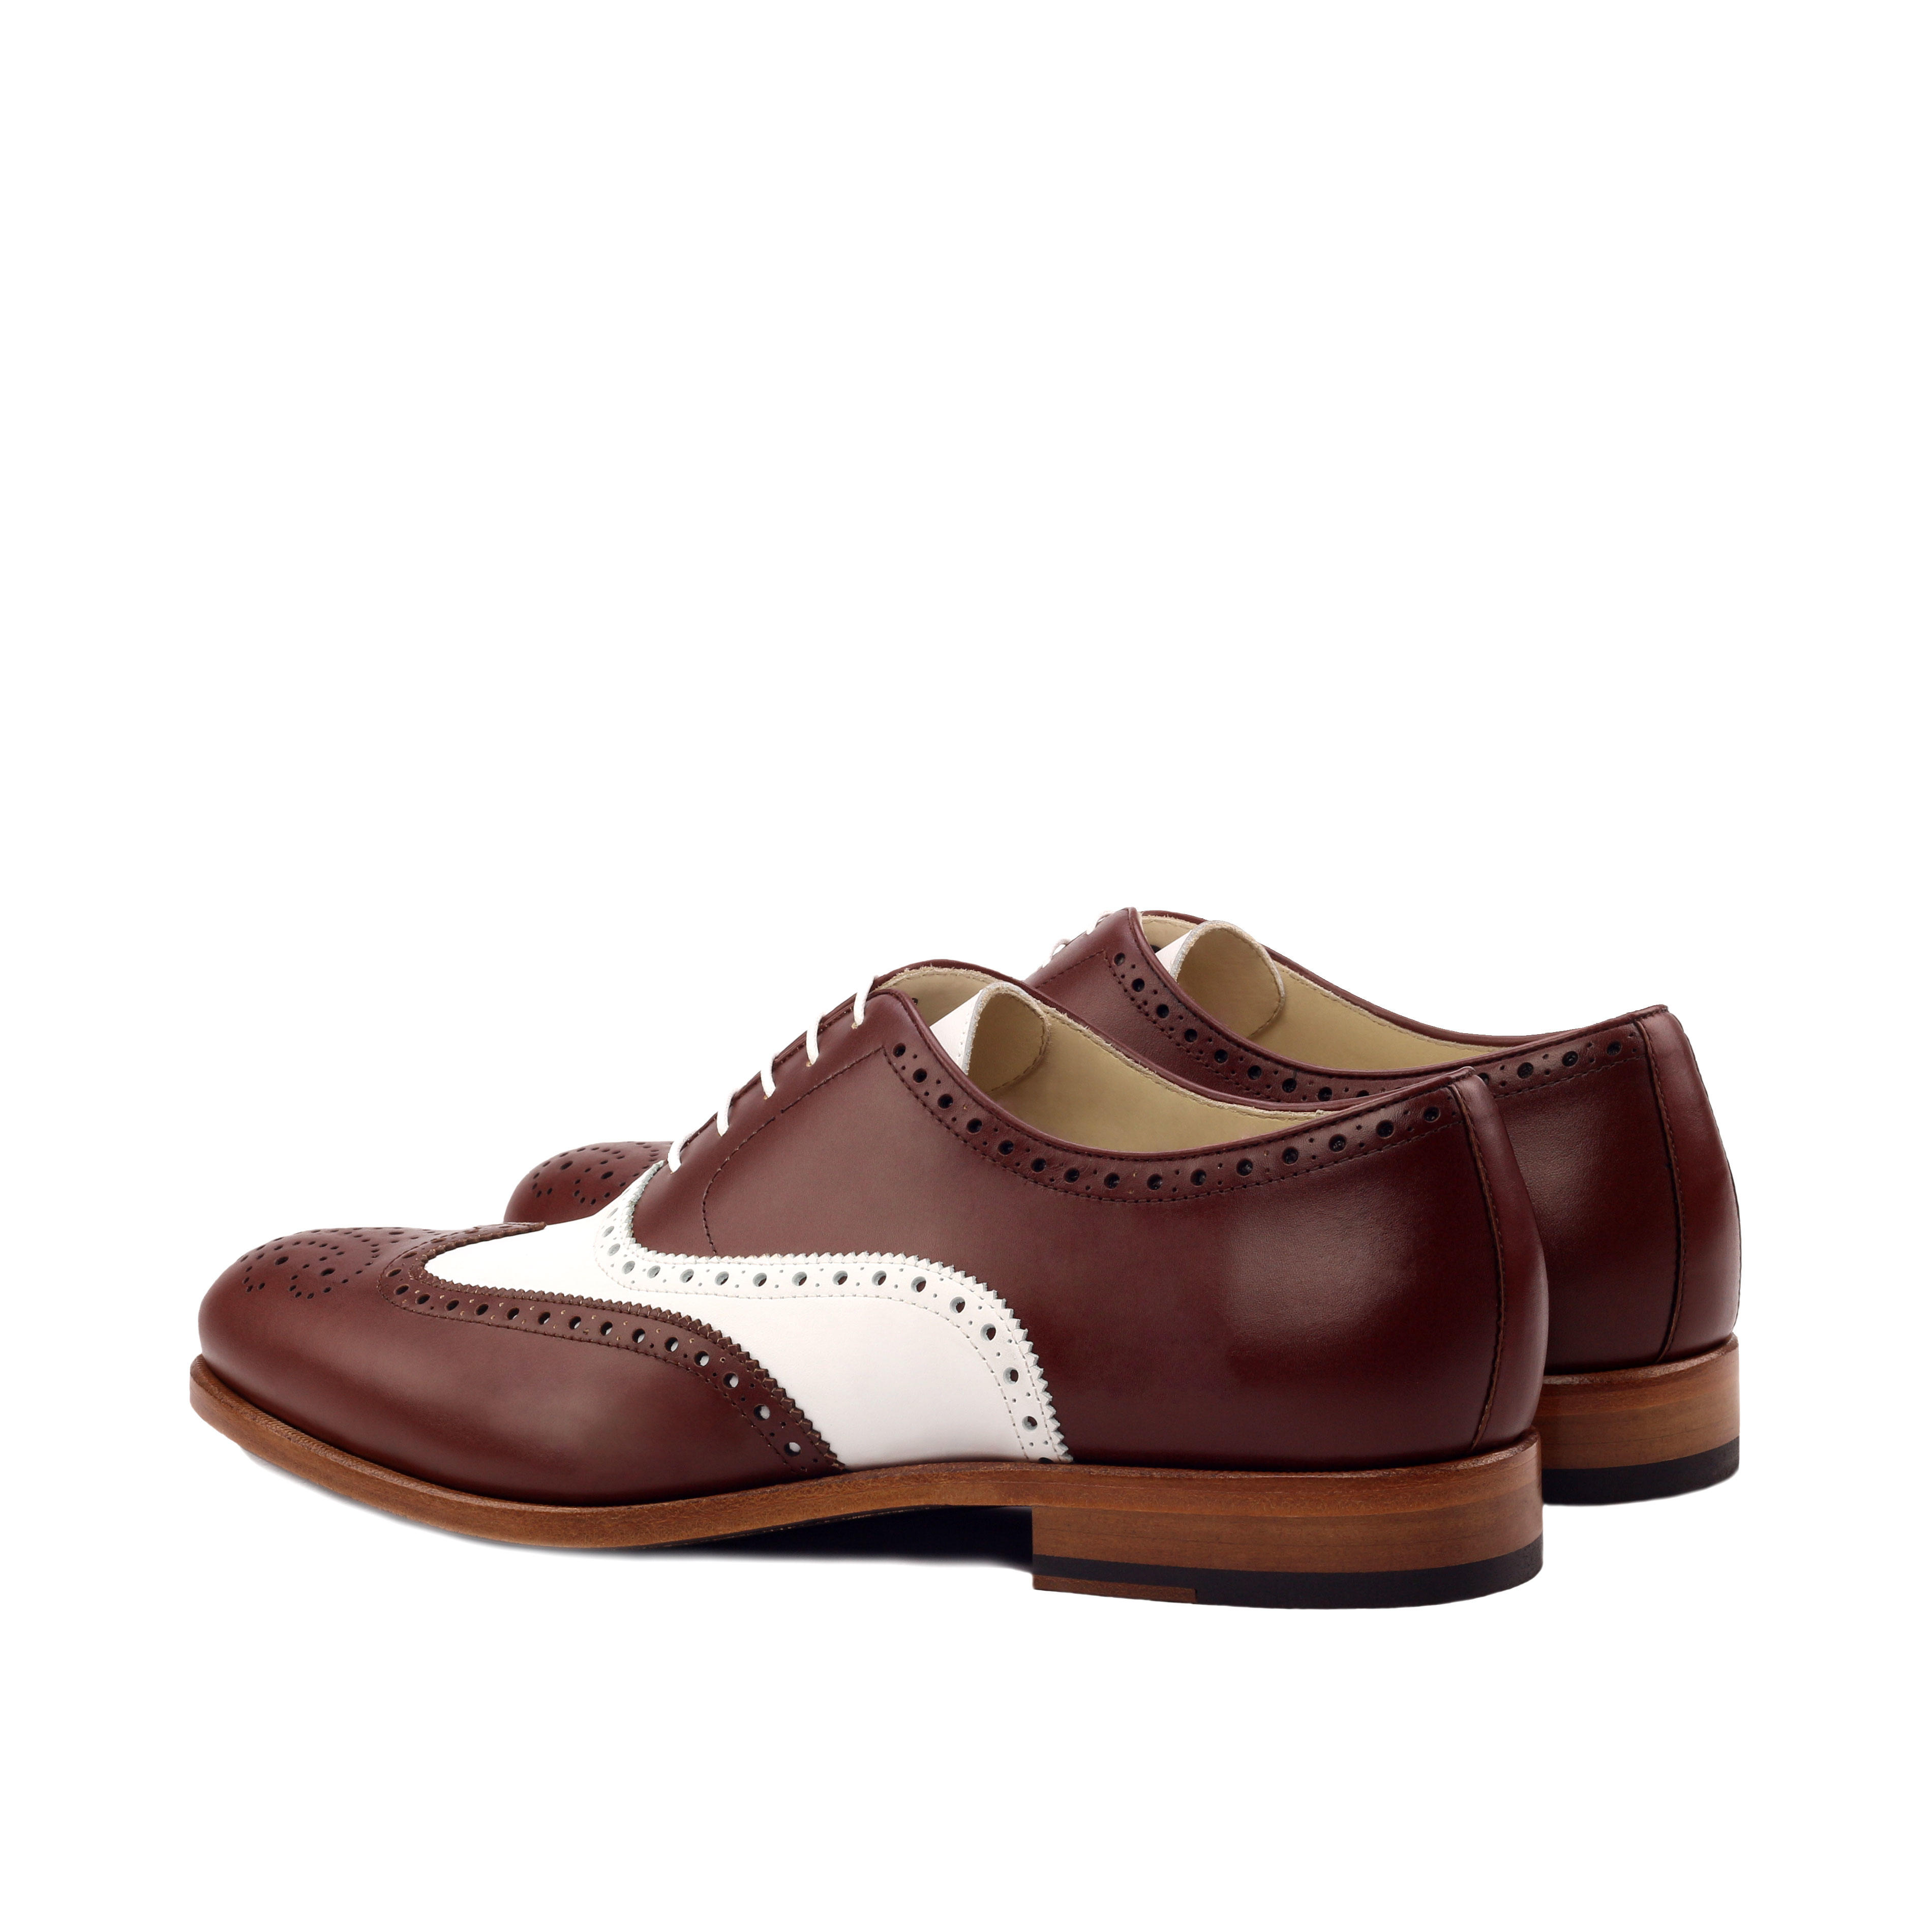 MANOR OF LONDON 'The Marylebone' Brown & White Calfskin Brogue Luxury Custom Initials Monogrammed Back Side View